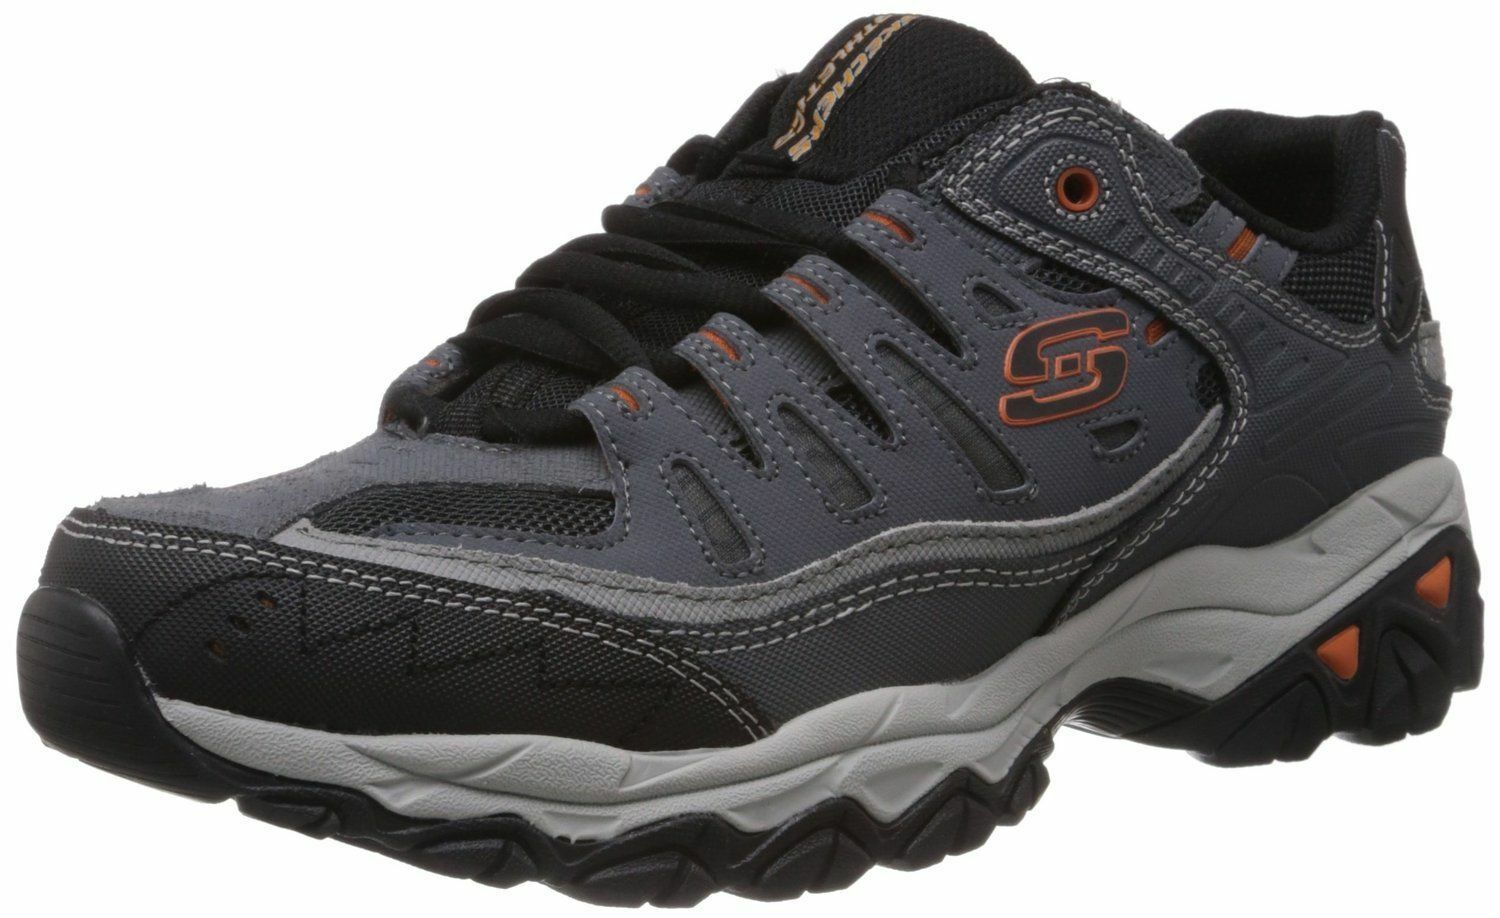 Skechers Sport Mens Afterburn Memory Foam Lace-Up Turnschuhe 50125 CCGY